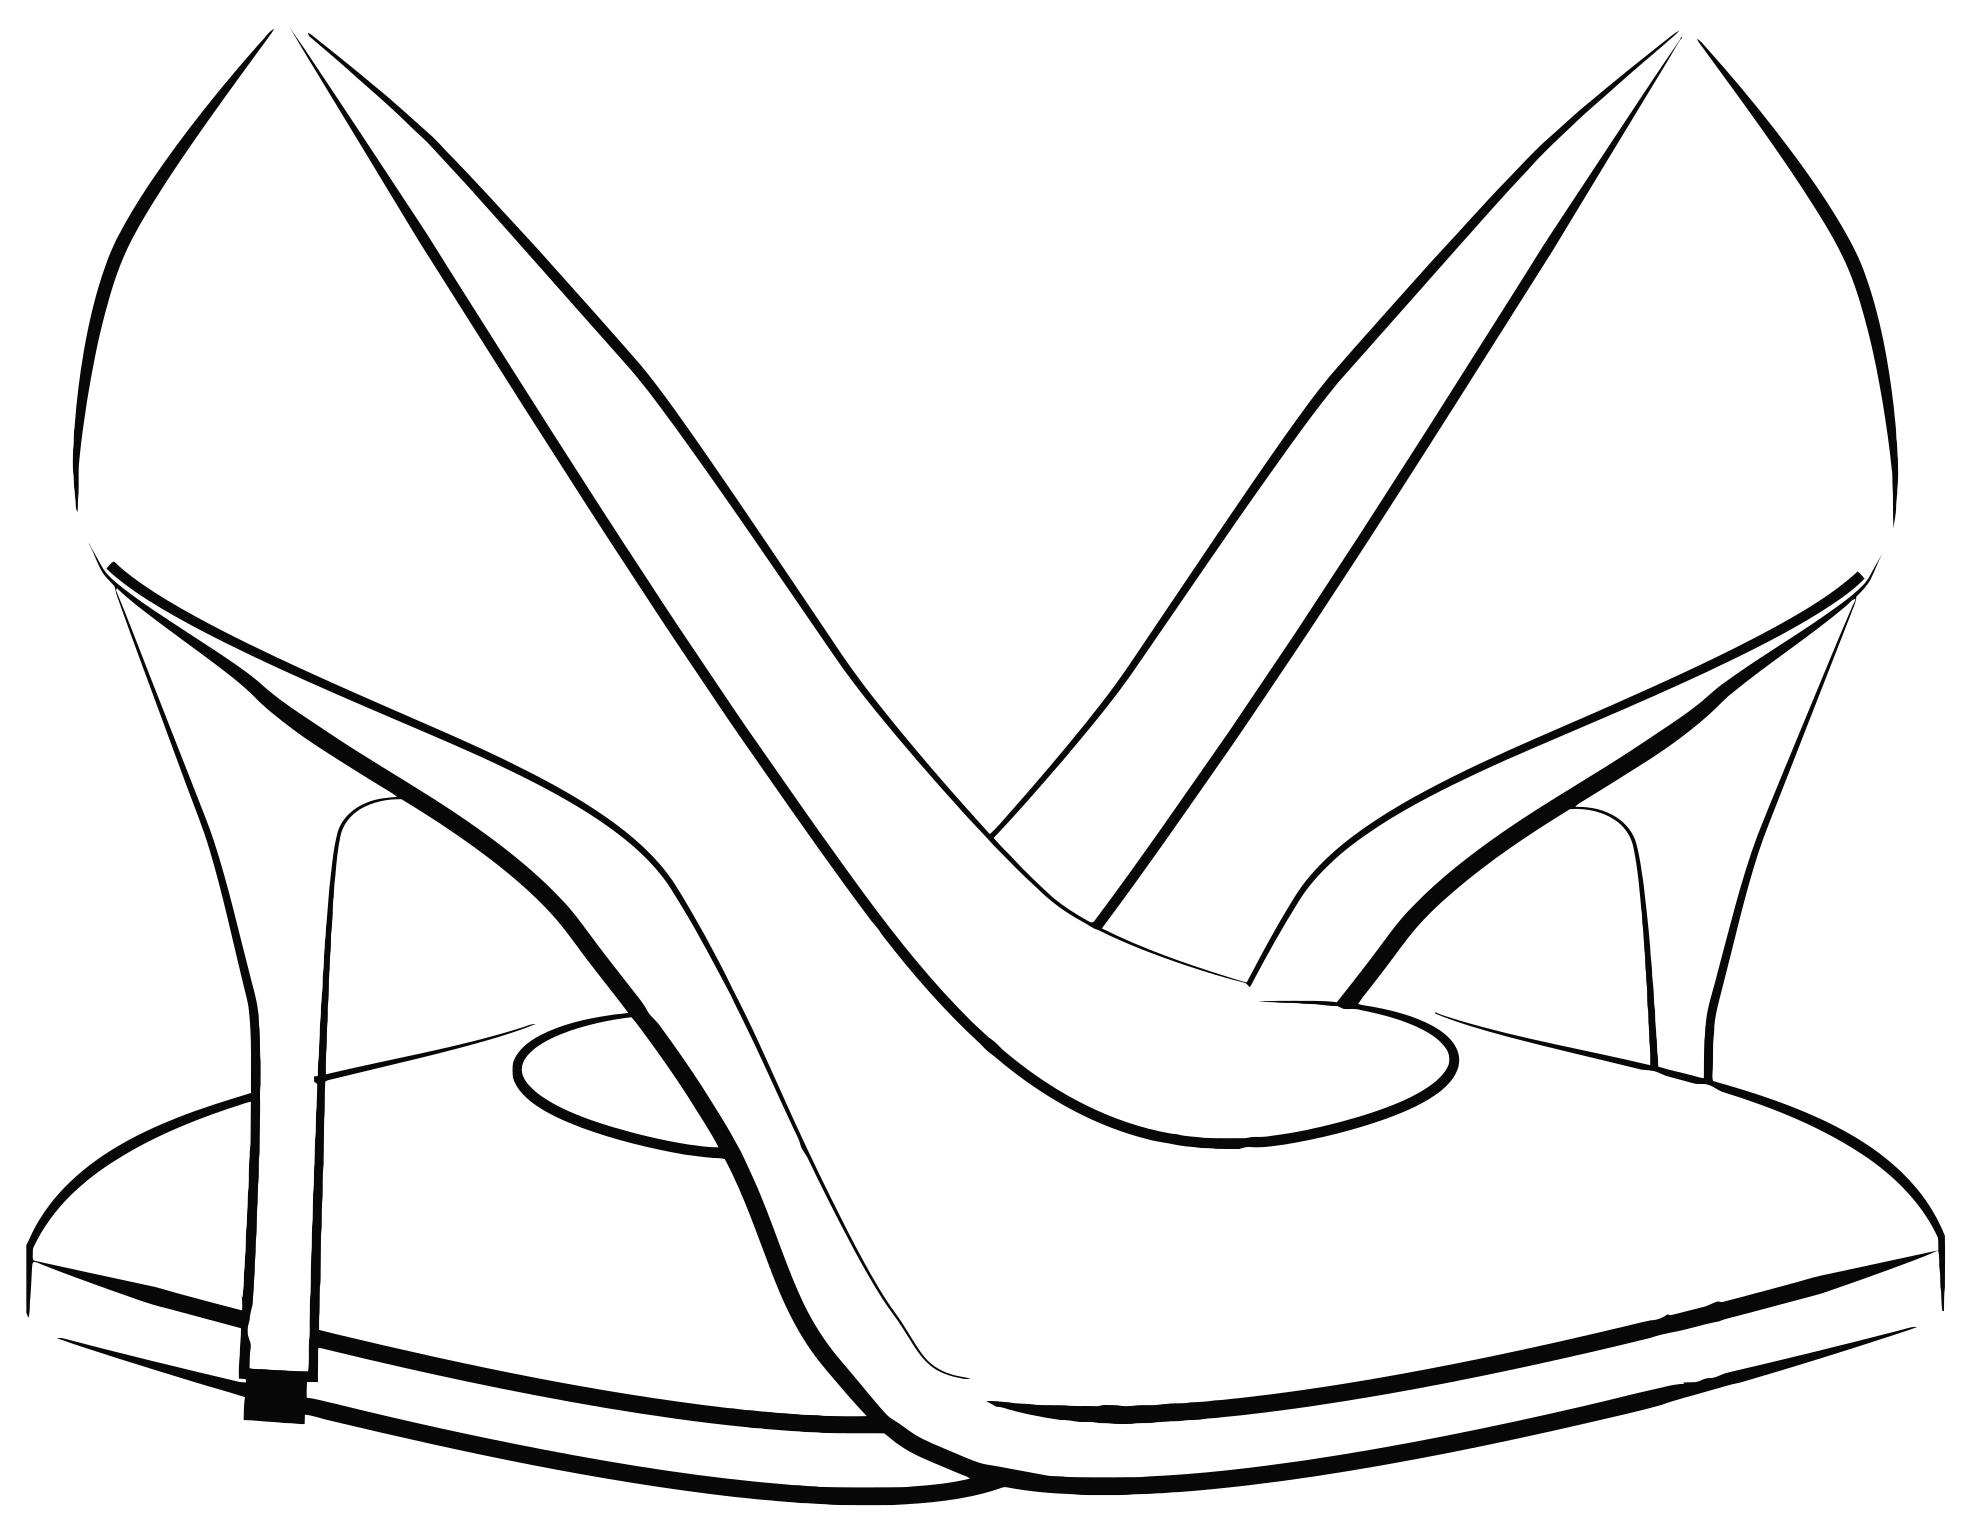 Womens shoes images clipart image library library 101+ Women Shoes Clipart   ClipartLook image library library